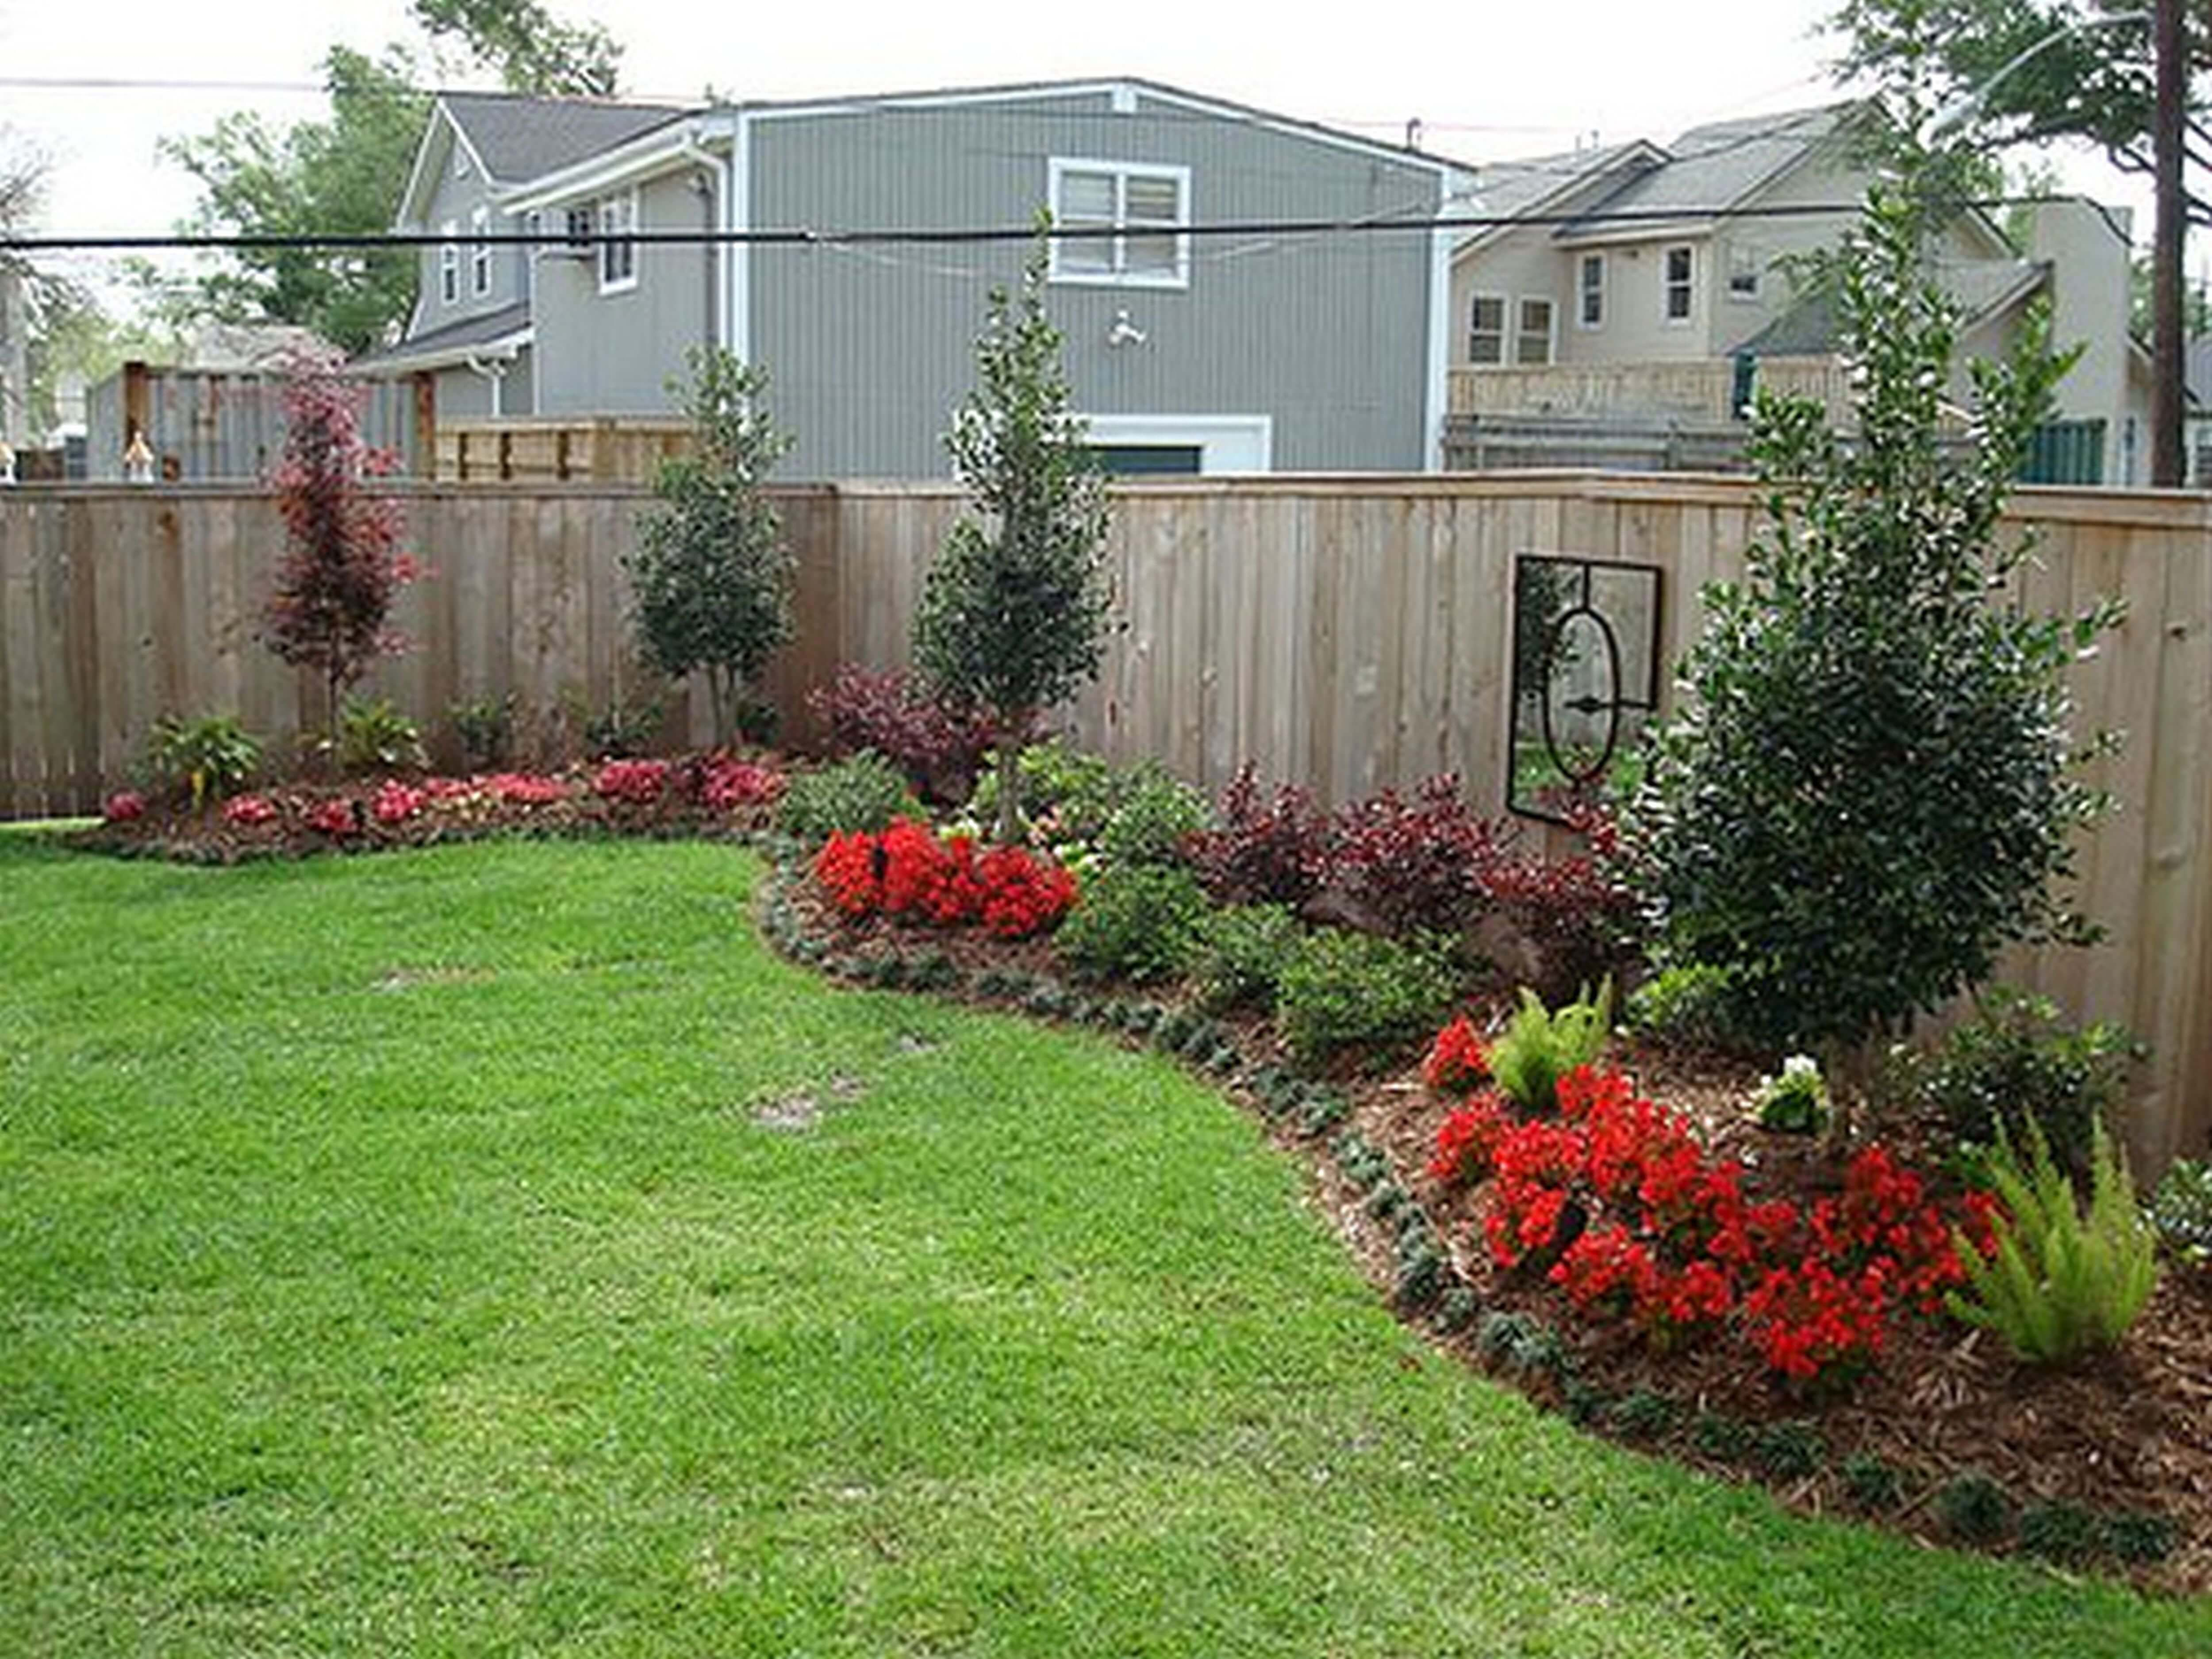 Pictures Of Simple Backyard Landscaping Ideas - http://backyardidea ...